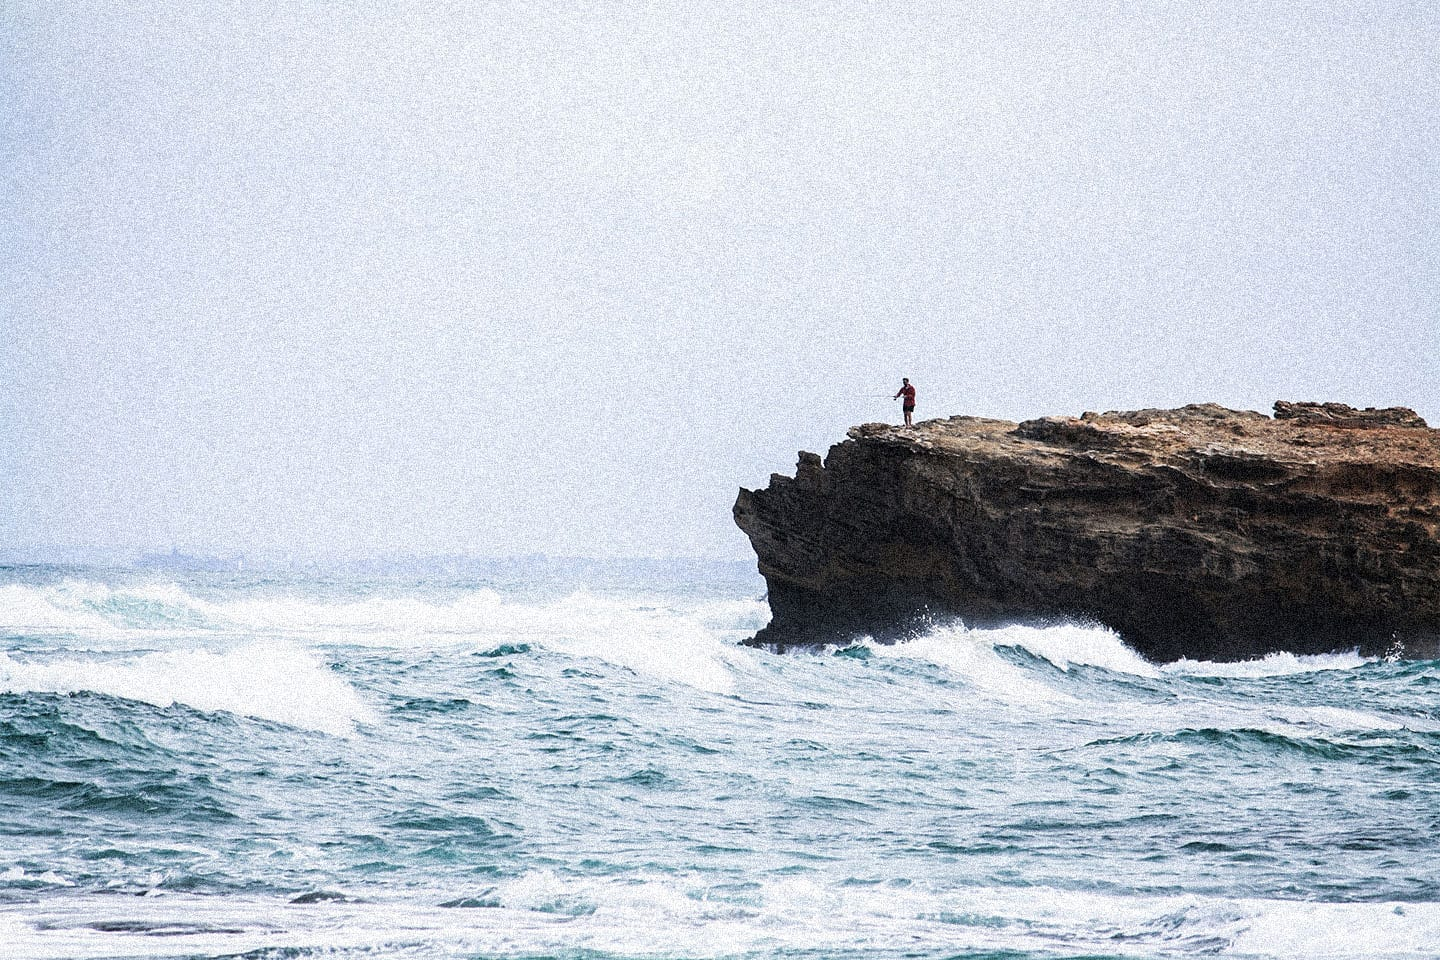 A man on a boulder fishing in the ocean.